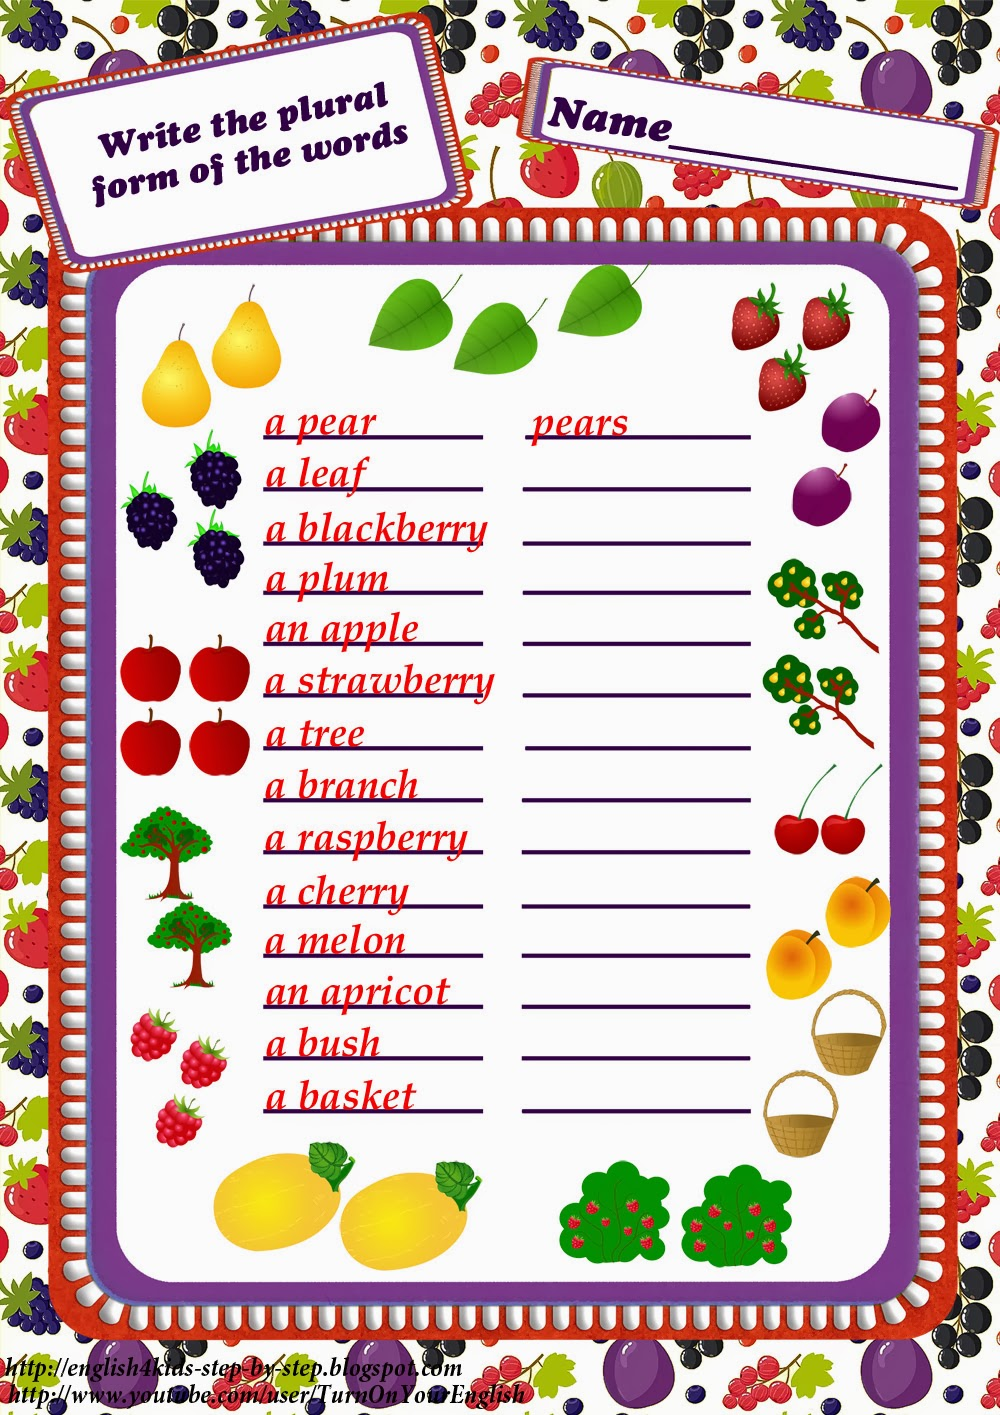 Workbooks making words plural worksheets : Fruits and Berries Worksheets